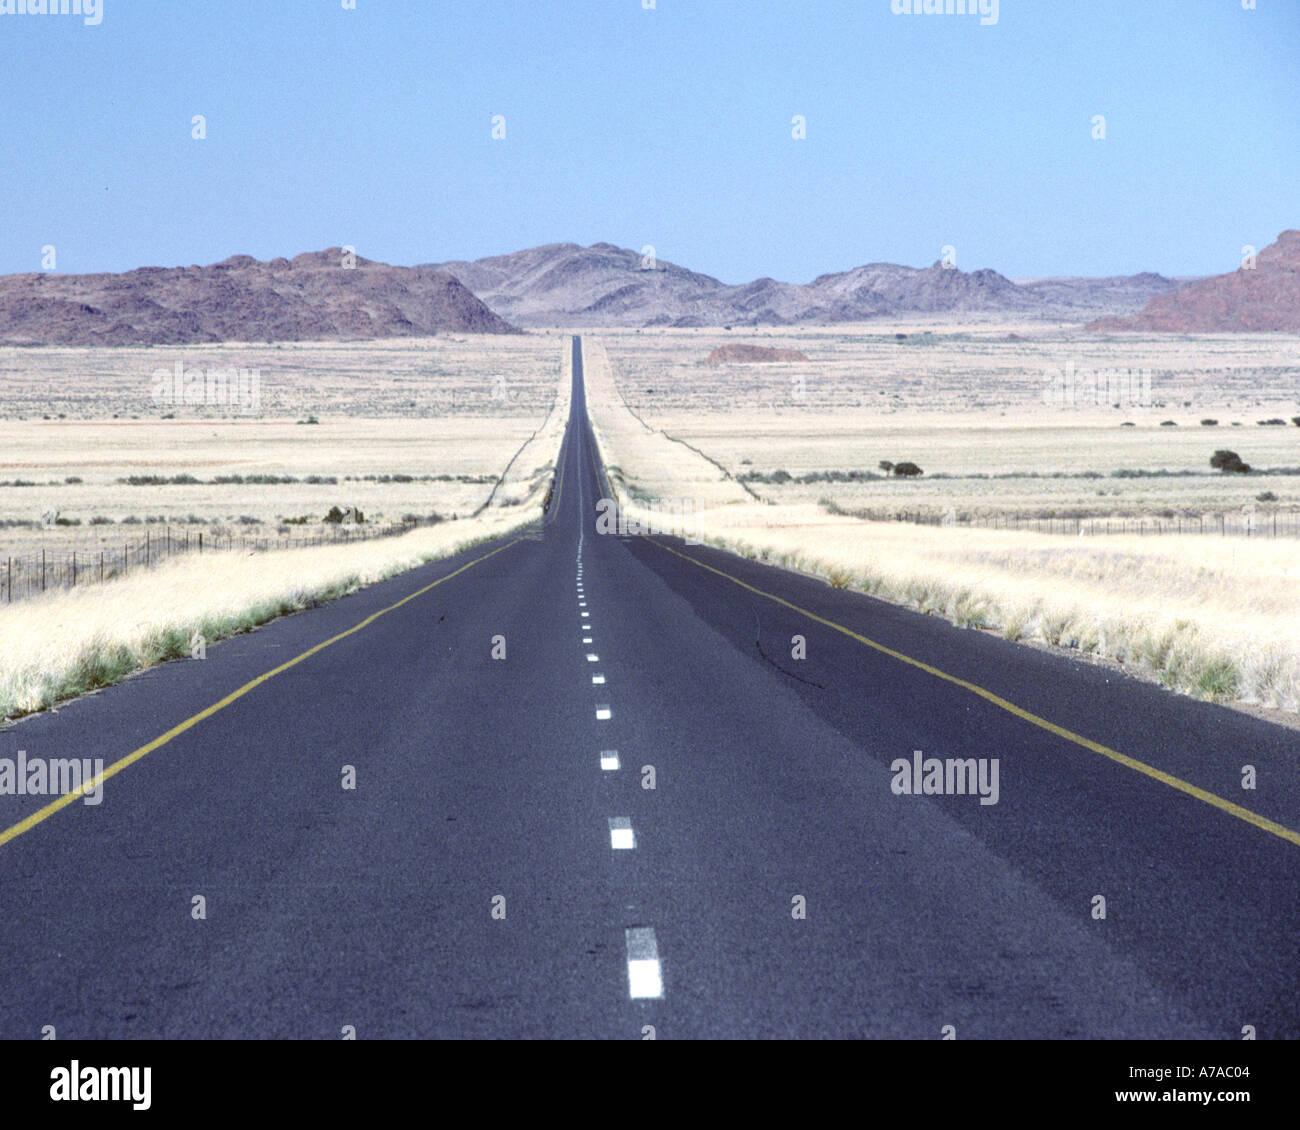 The N14 road in South Africa's Northern Cape province. Stock Photo